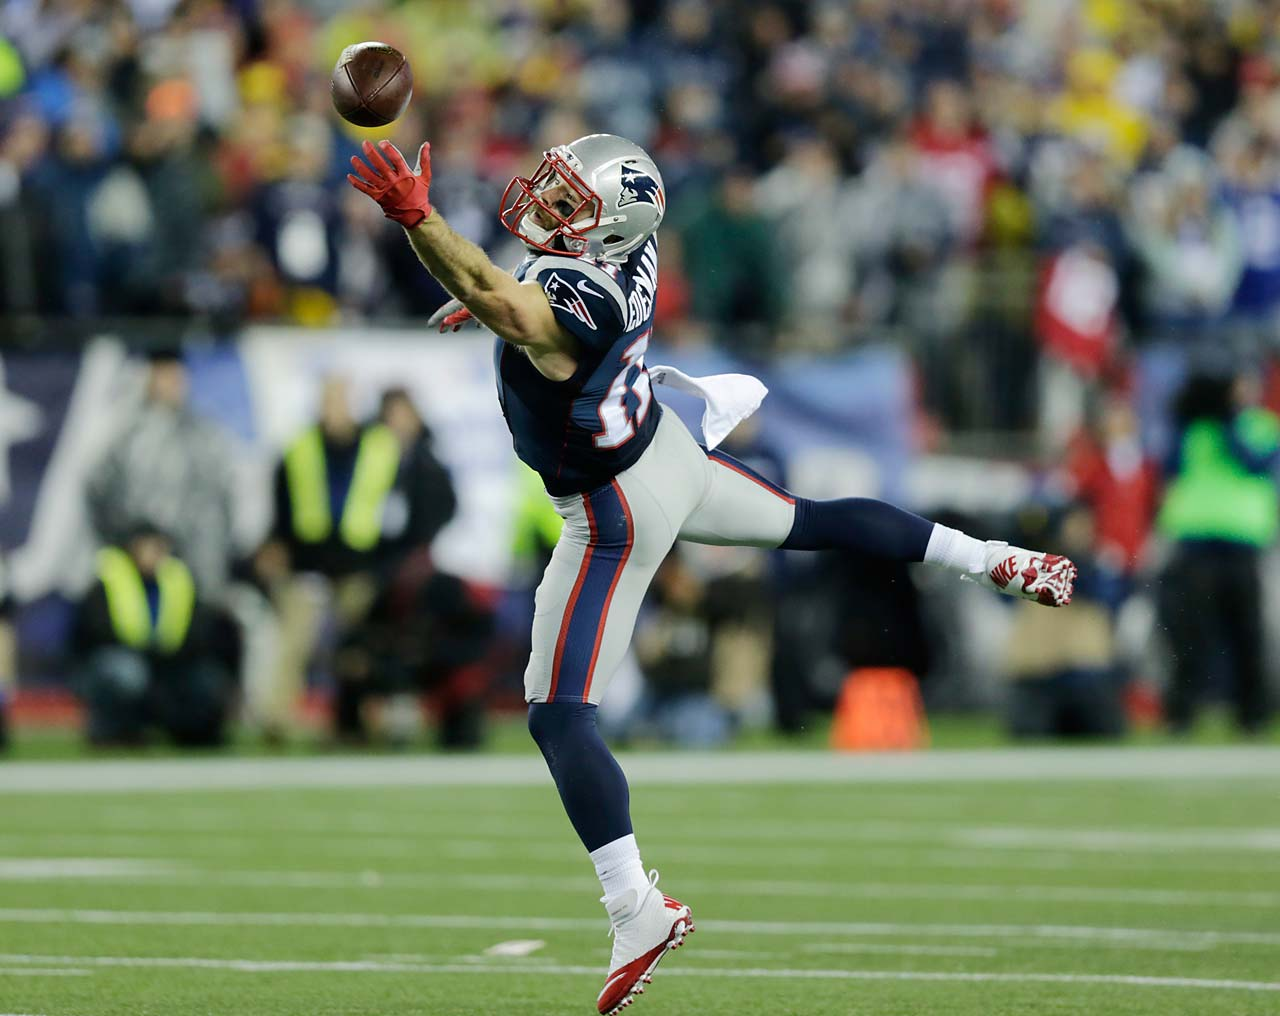 Julian Edelman tries to make a catch during the first half.